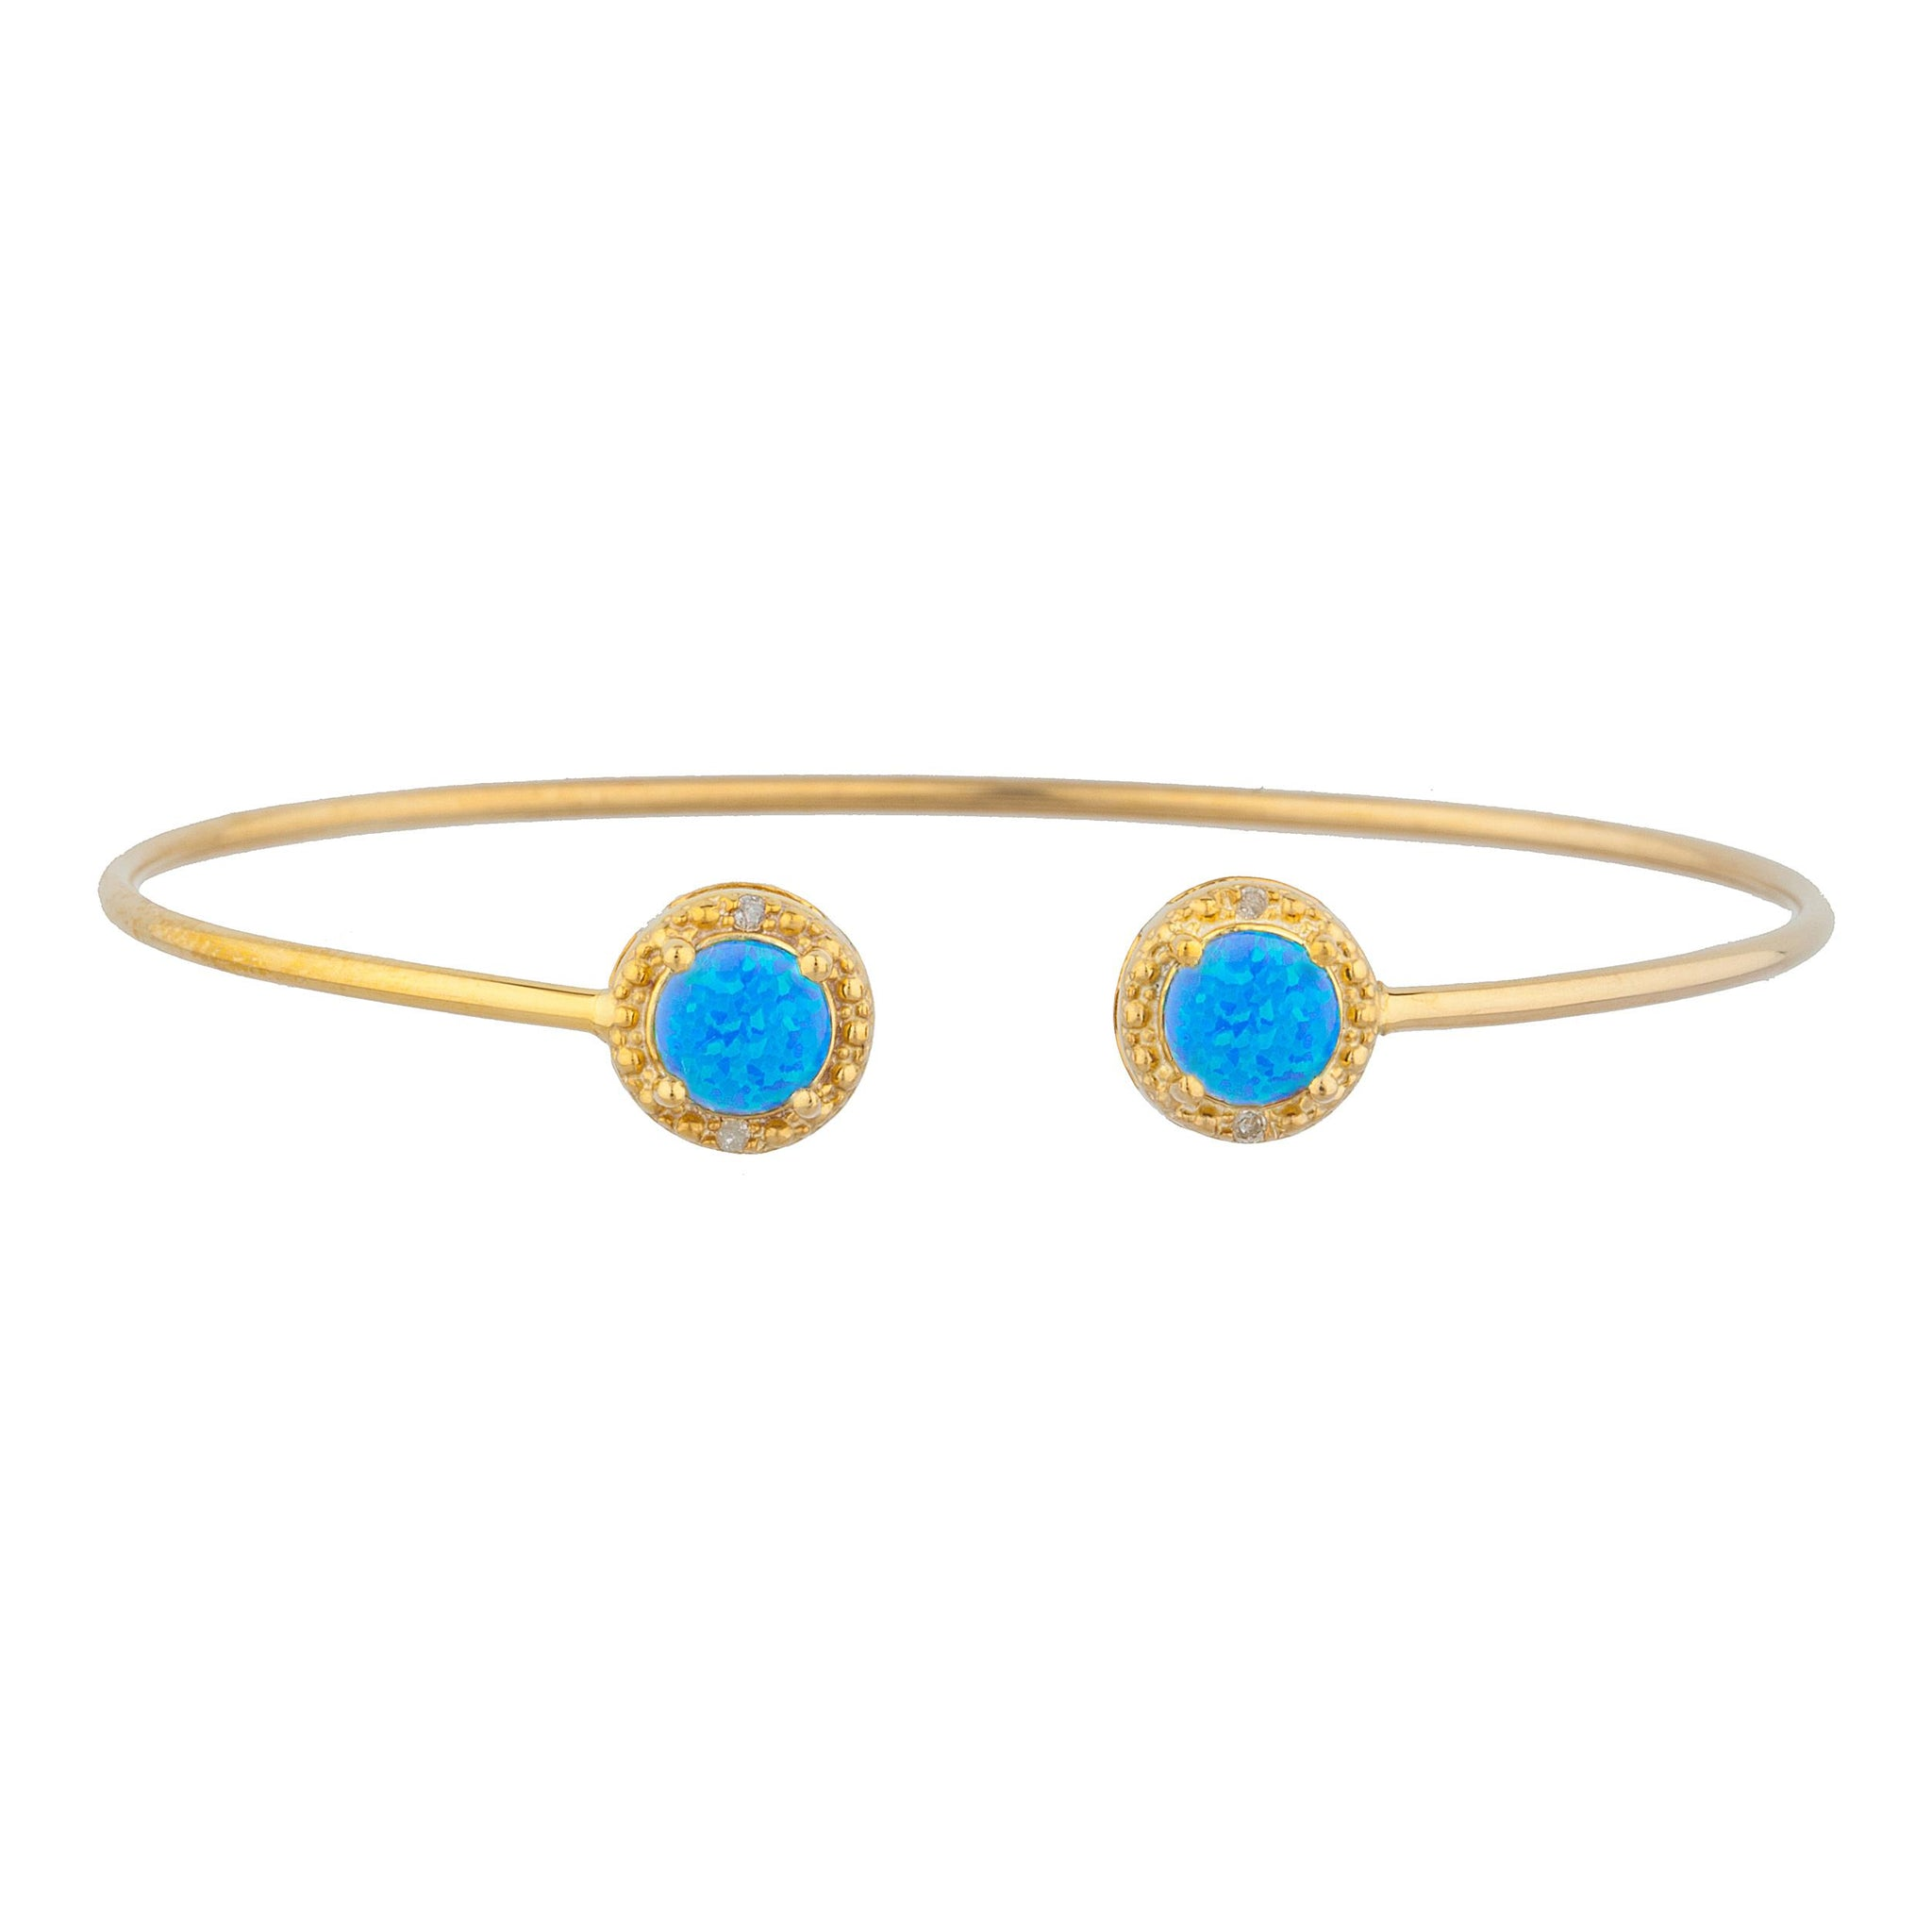 14Kt Yellow Gold Plated Blue Opal & Diamond Round Bangle Bracelet